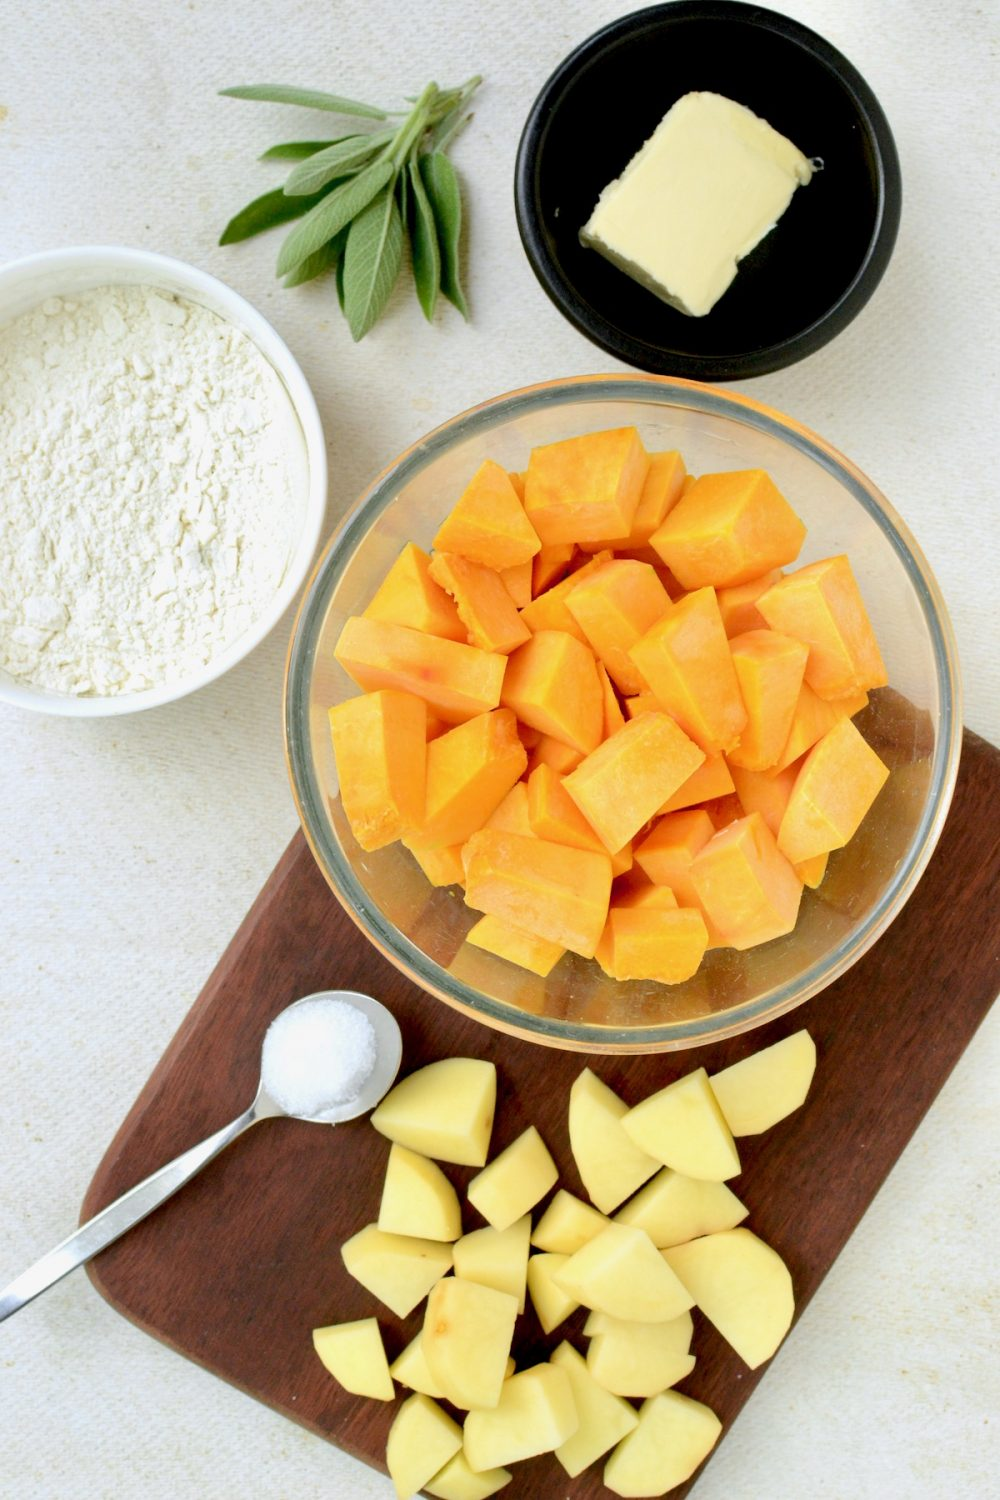 A bowl with cubes of pumpkin, next to a choppinf board with poato cubes, a bowl of flour, a square of vegan butter and a sprig of sage.